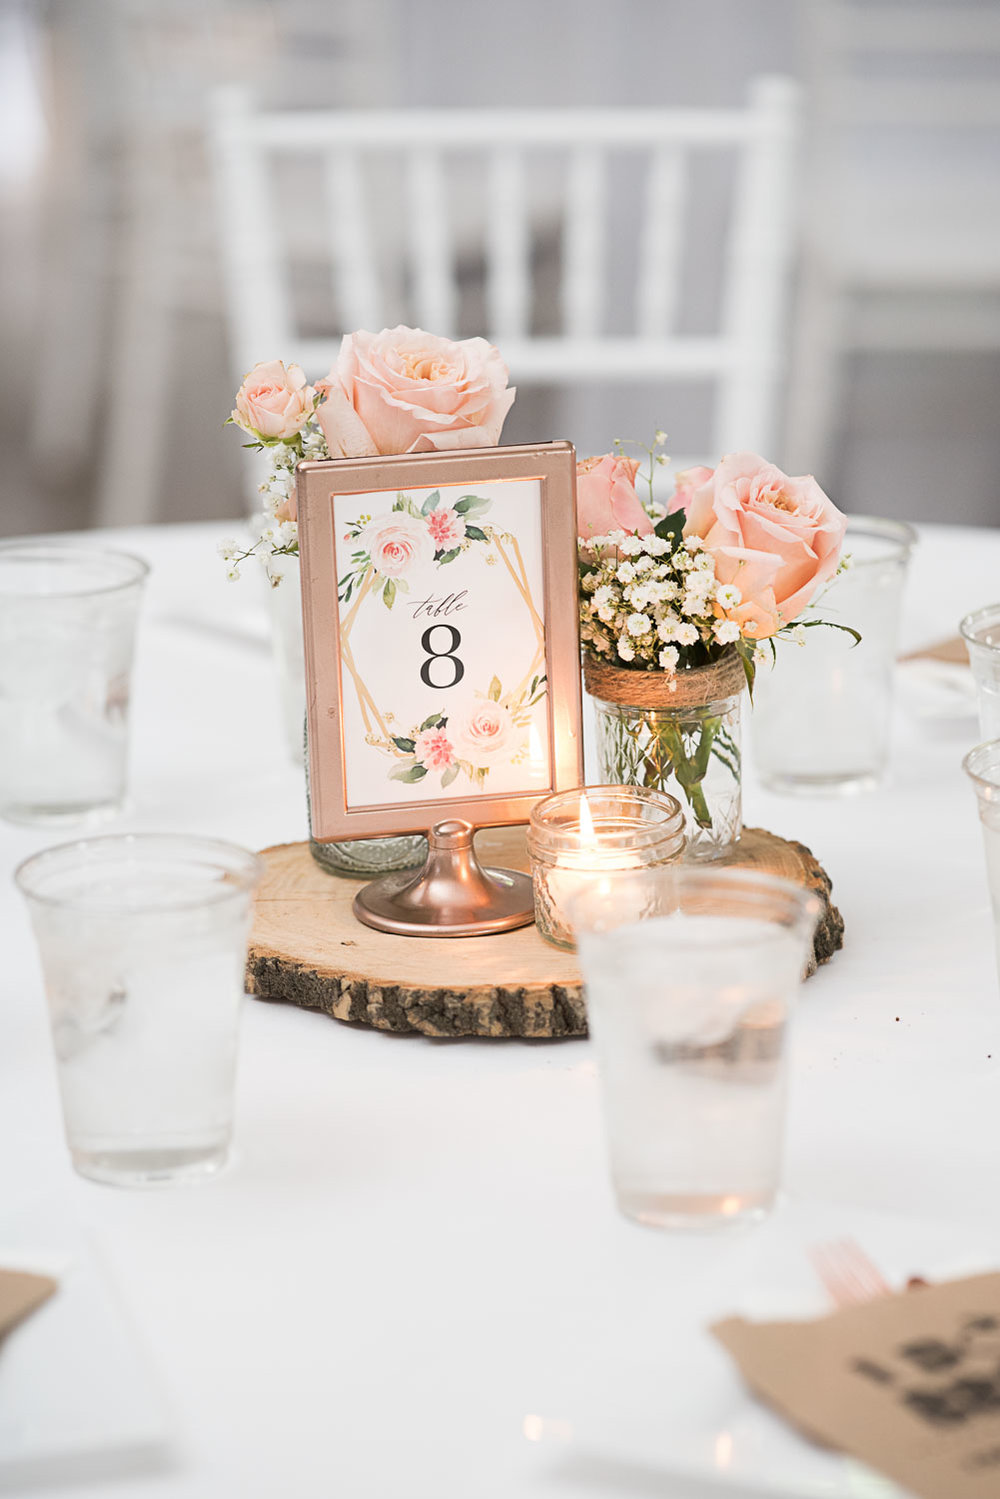 91 Countryside Chalet Reception Decorations.jpg